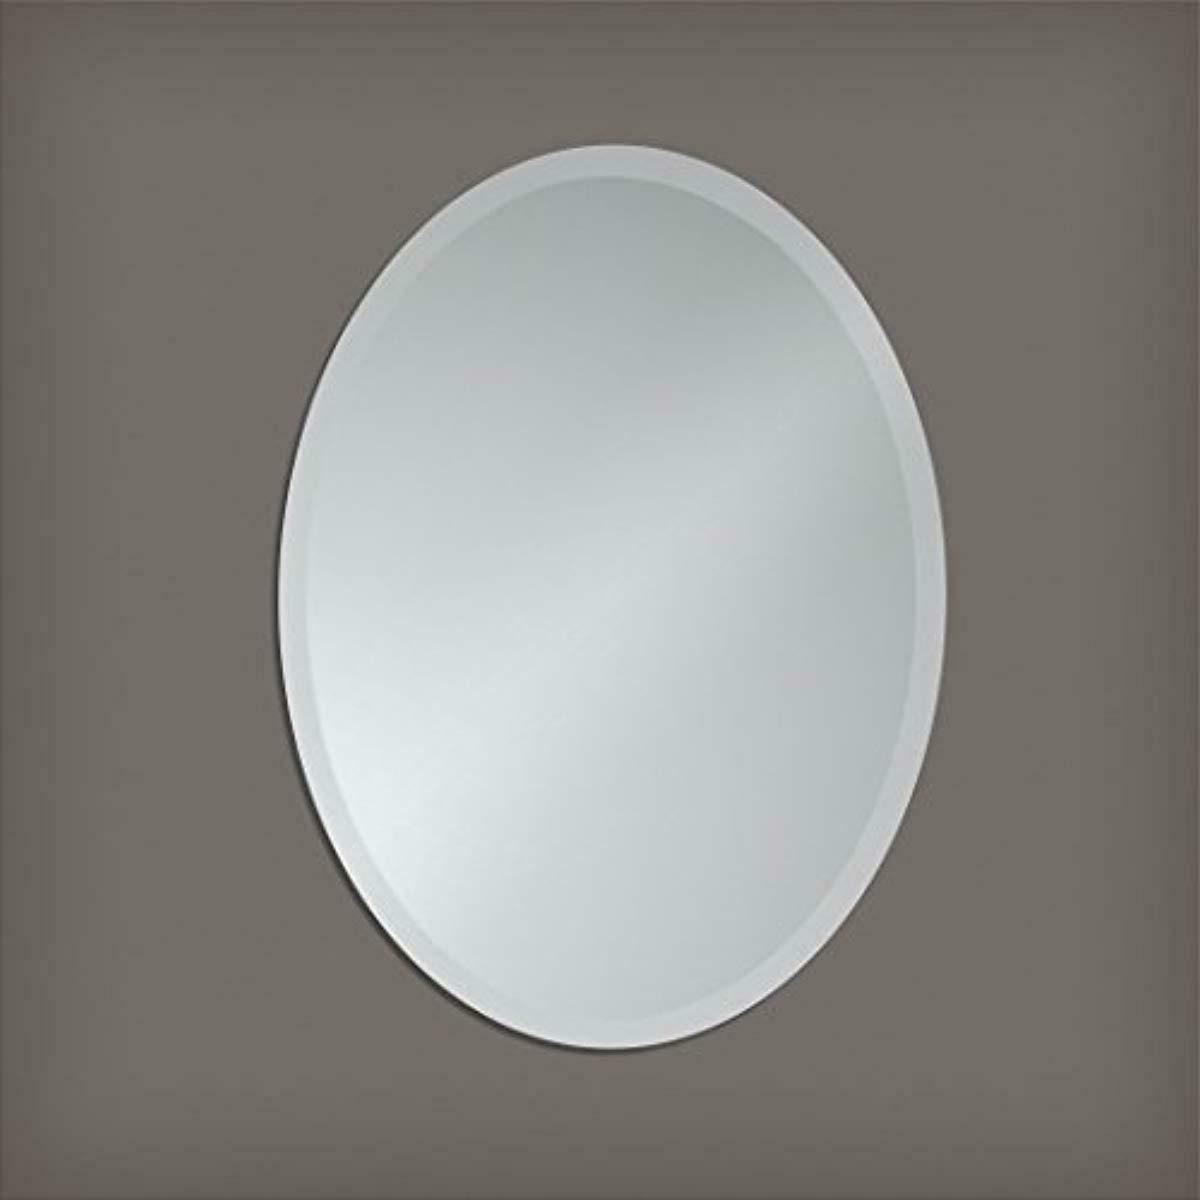 Beveled Oval Makeup Mirror Small Frameless Bedroom